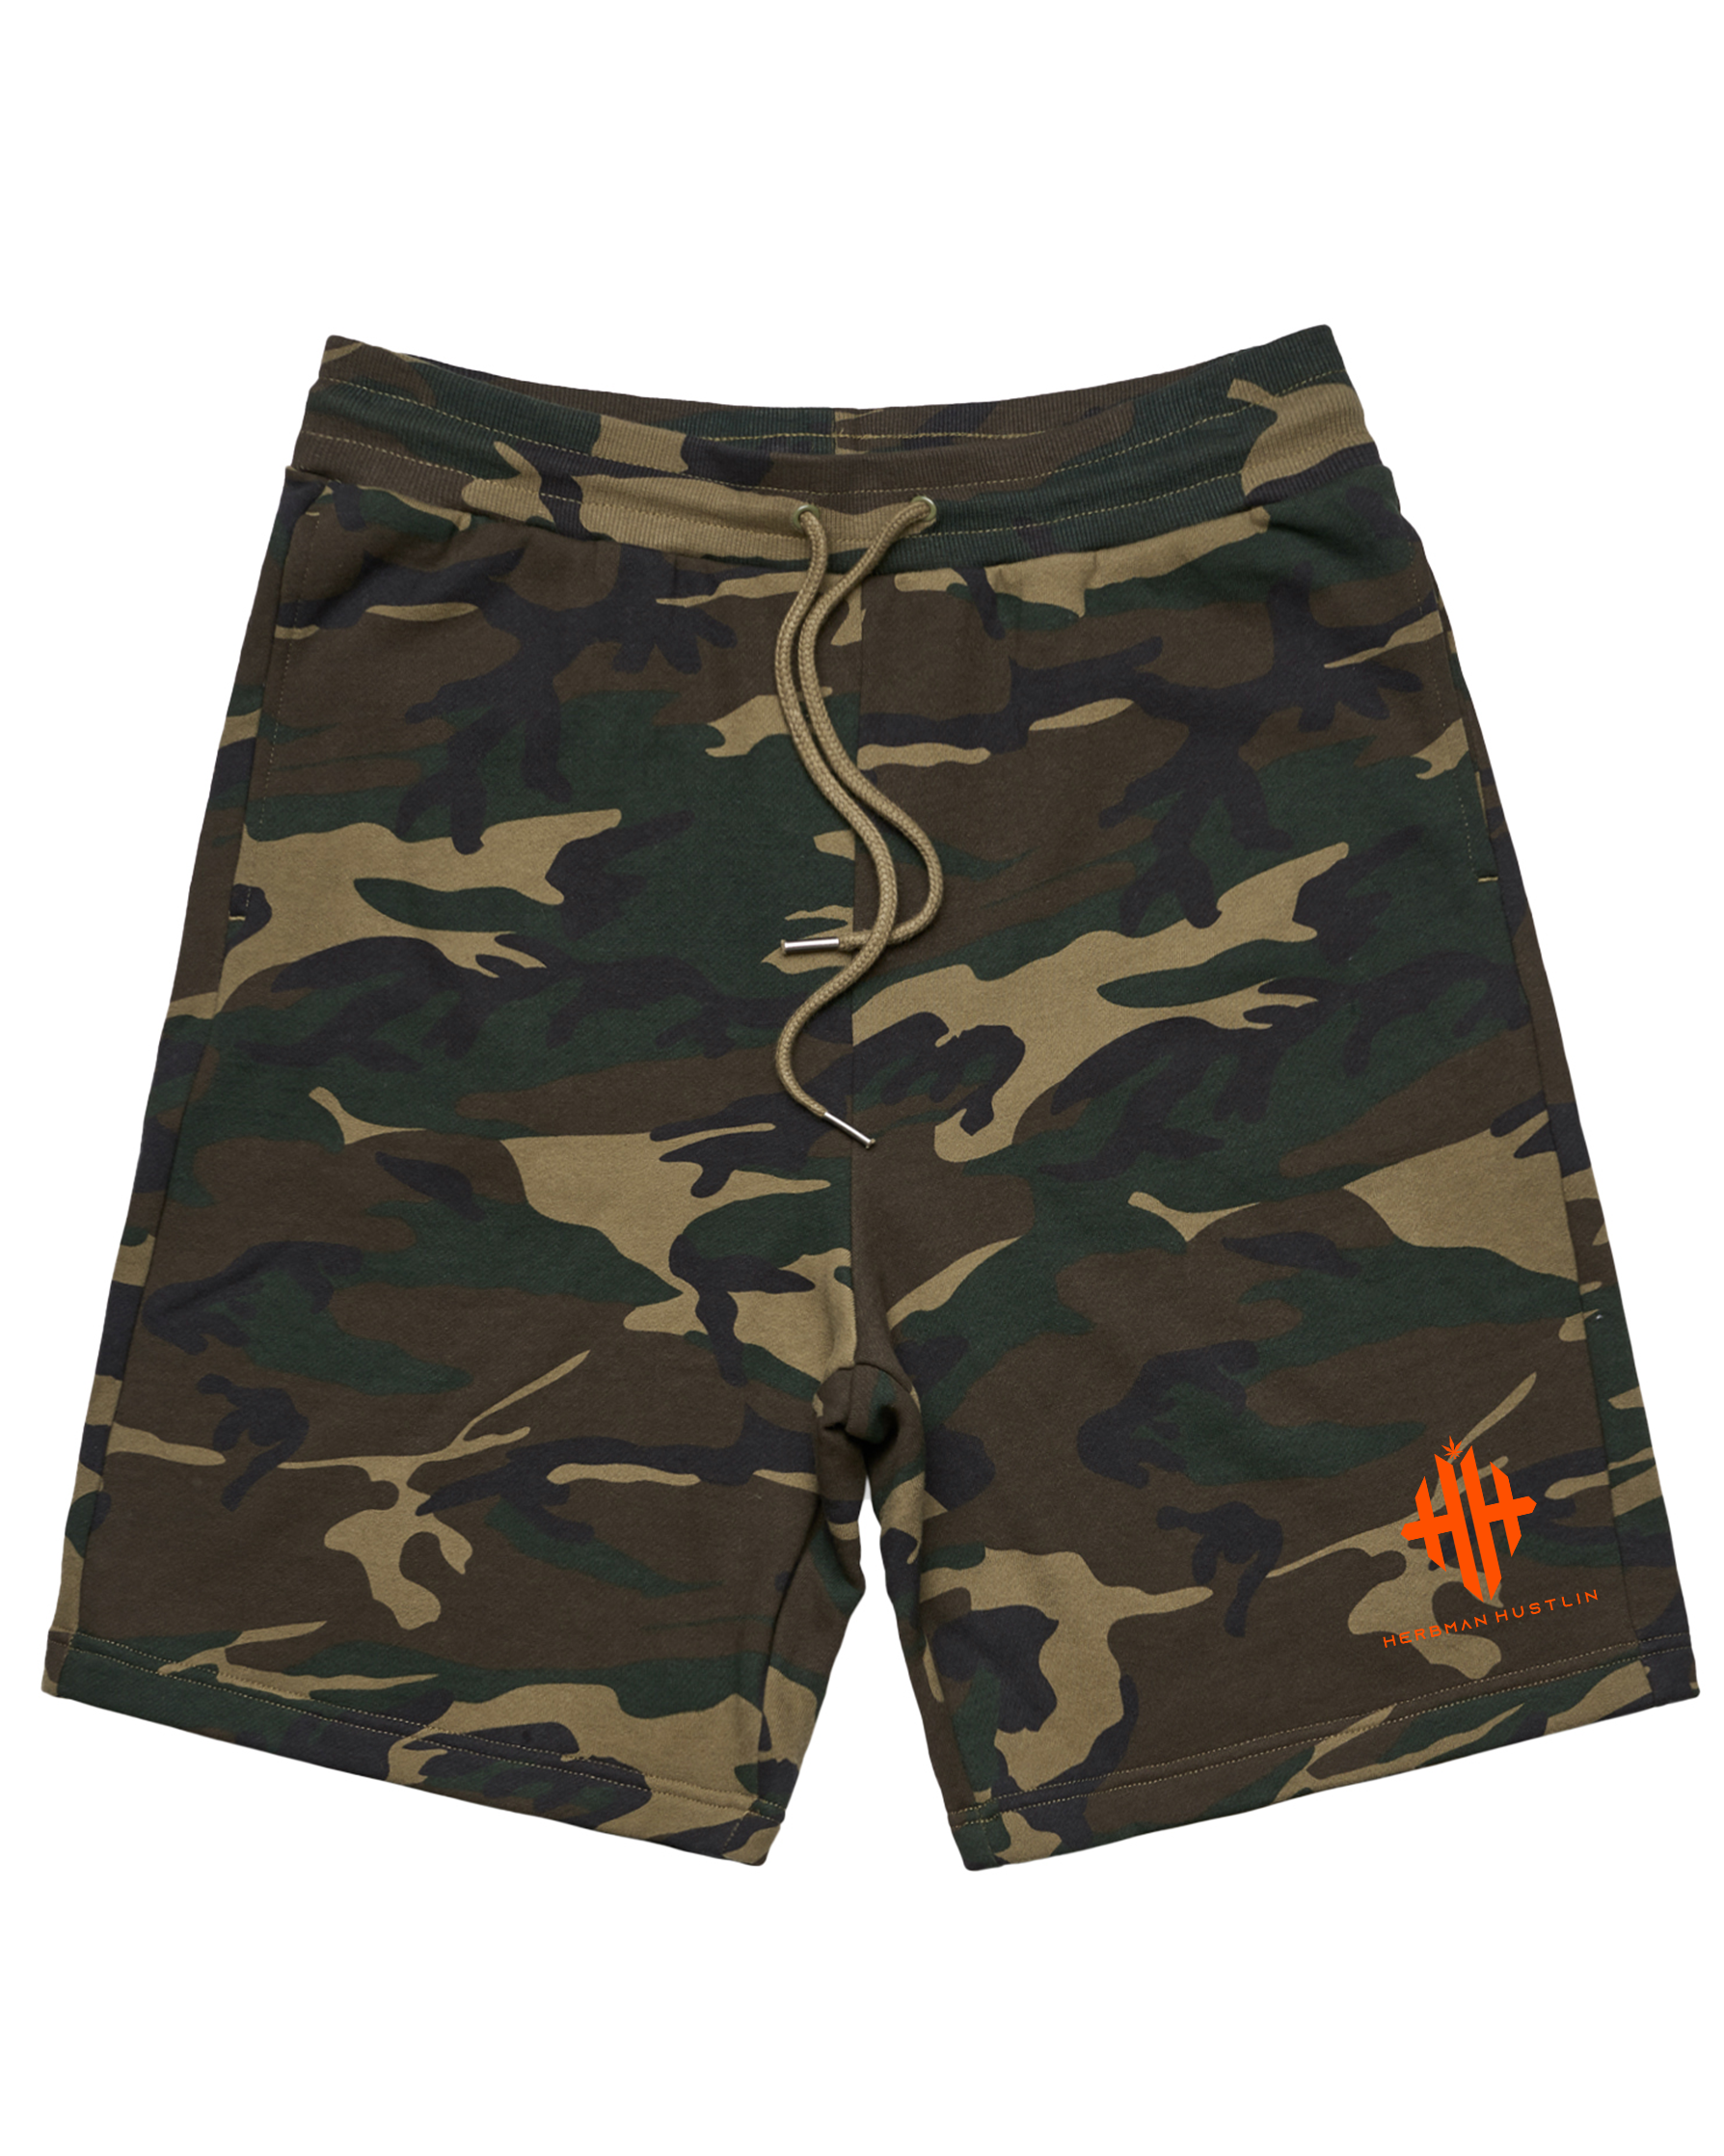 Herbman Hustlin Monogram Heavyweight Shorts - Camo/Orange - LIMITED DROP